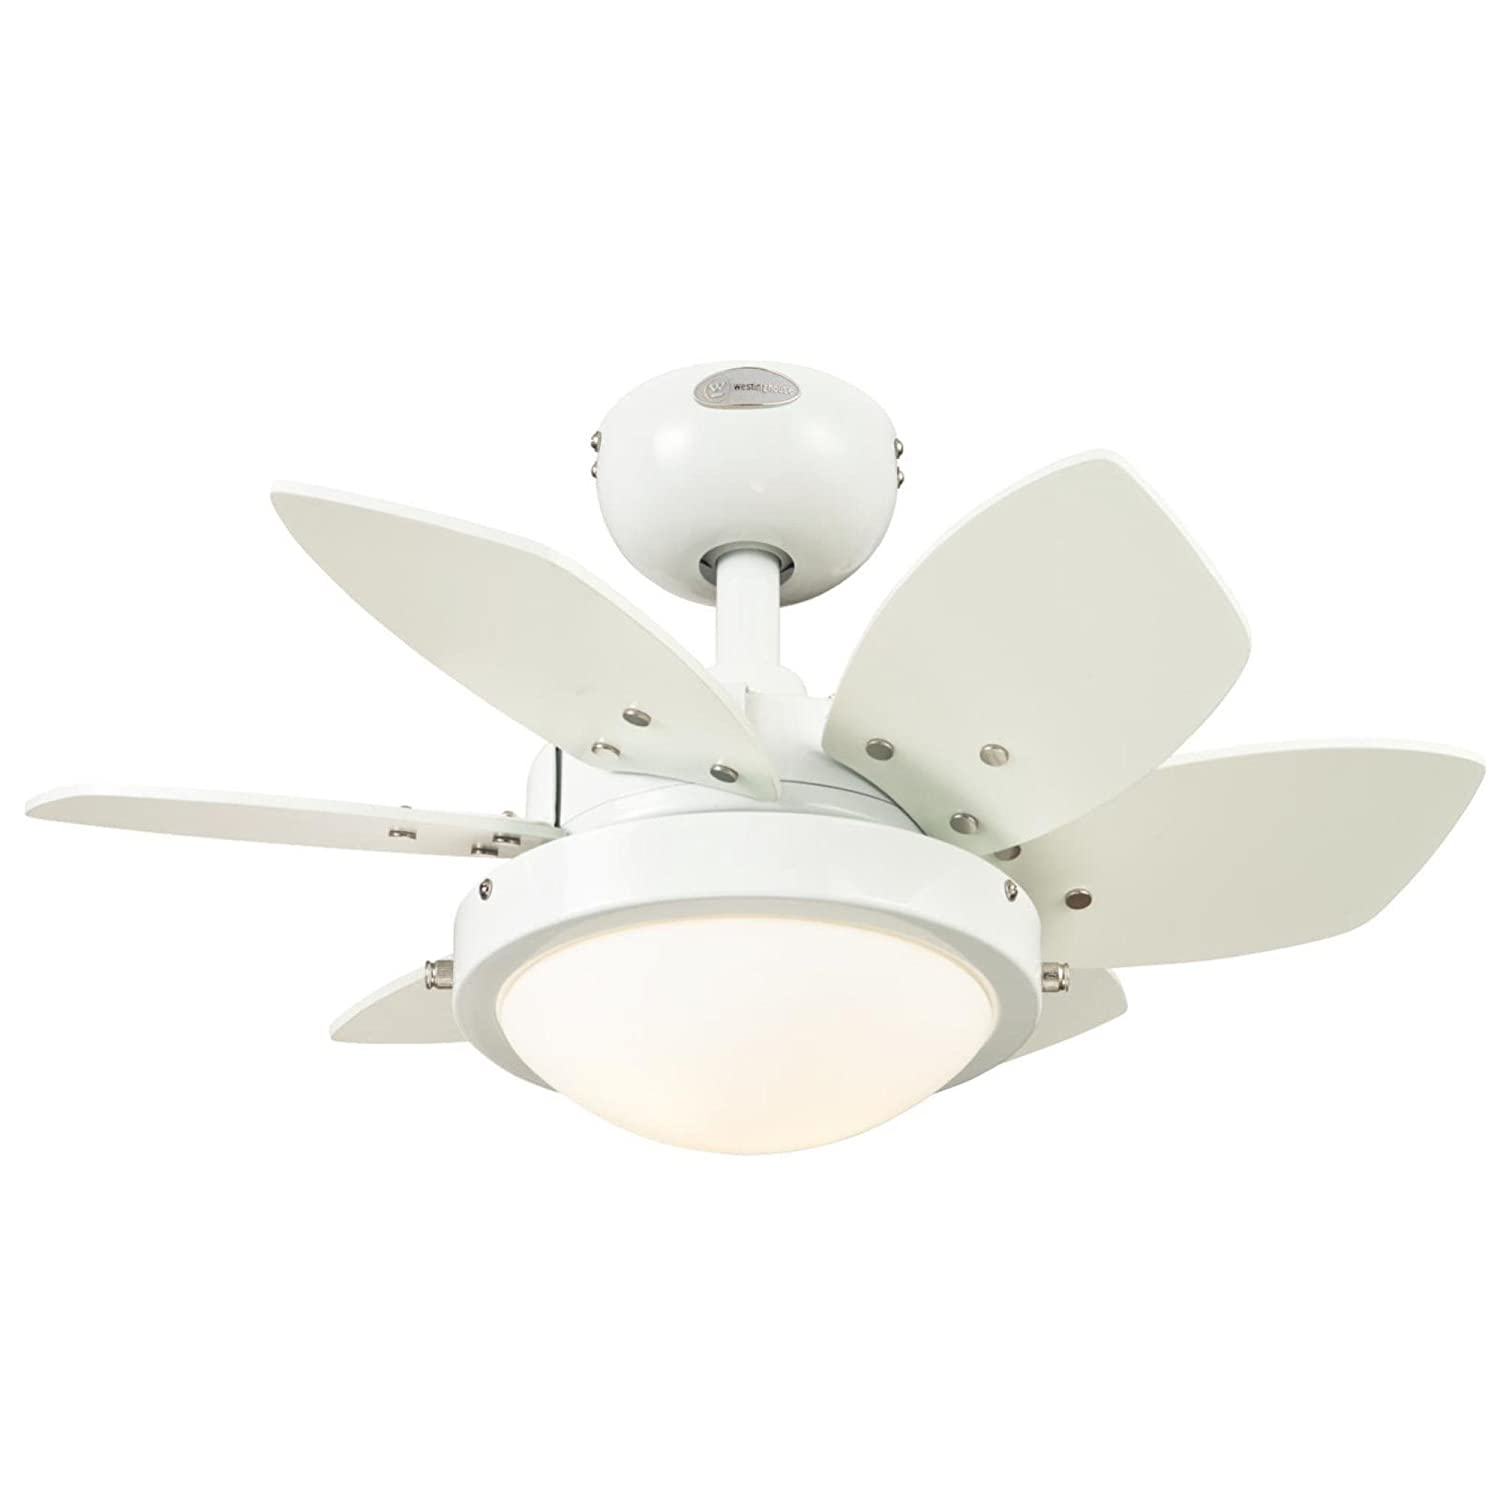 Westinghouse 7247100 Quince Two-Light Reversible Six-Blade Indoor Ceiling Fan, 24-Inch, White Finish with Opal Frosted Glass